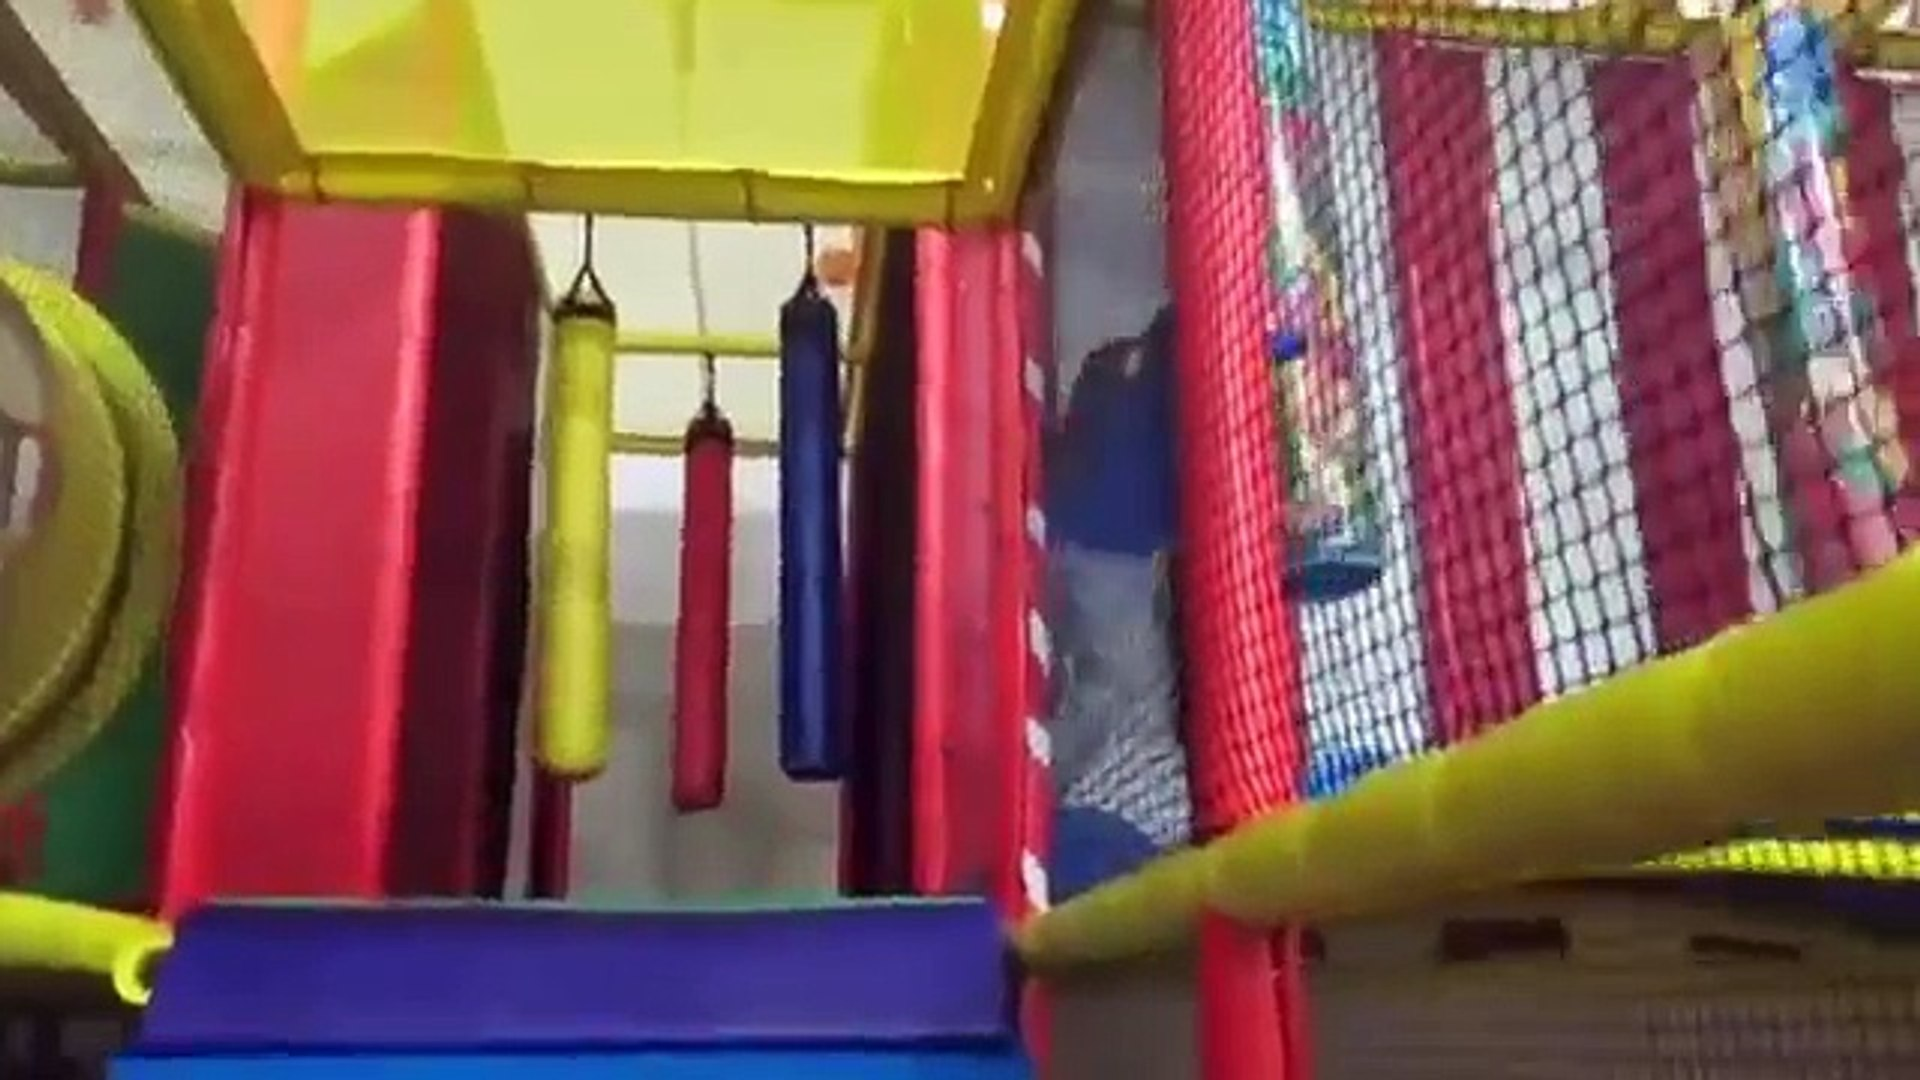 kids fun world indoor playground for kids entertainment/family play center!!!2016